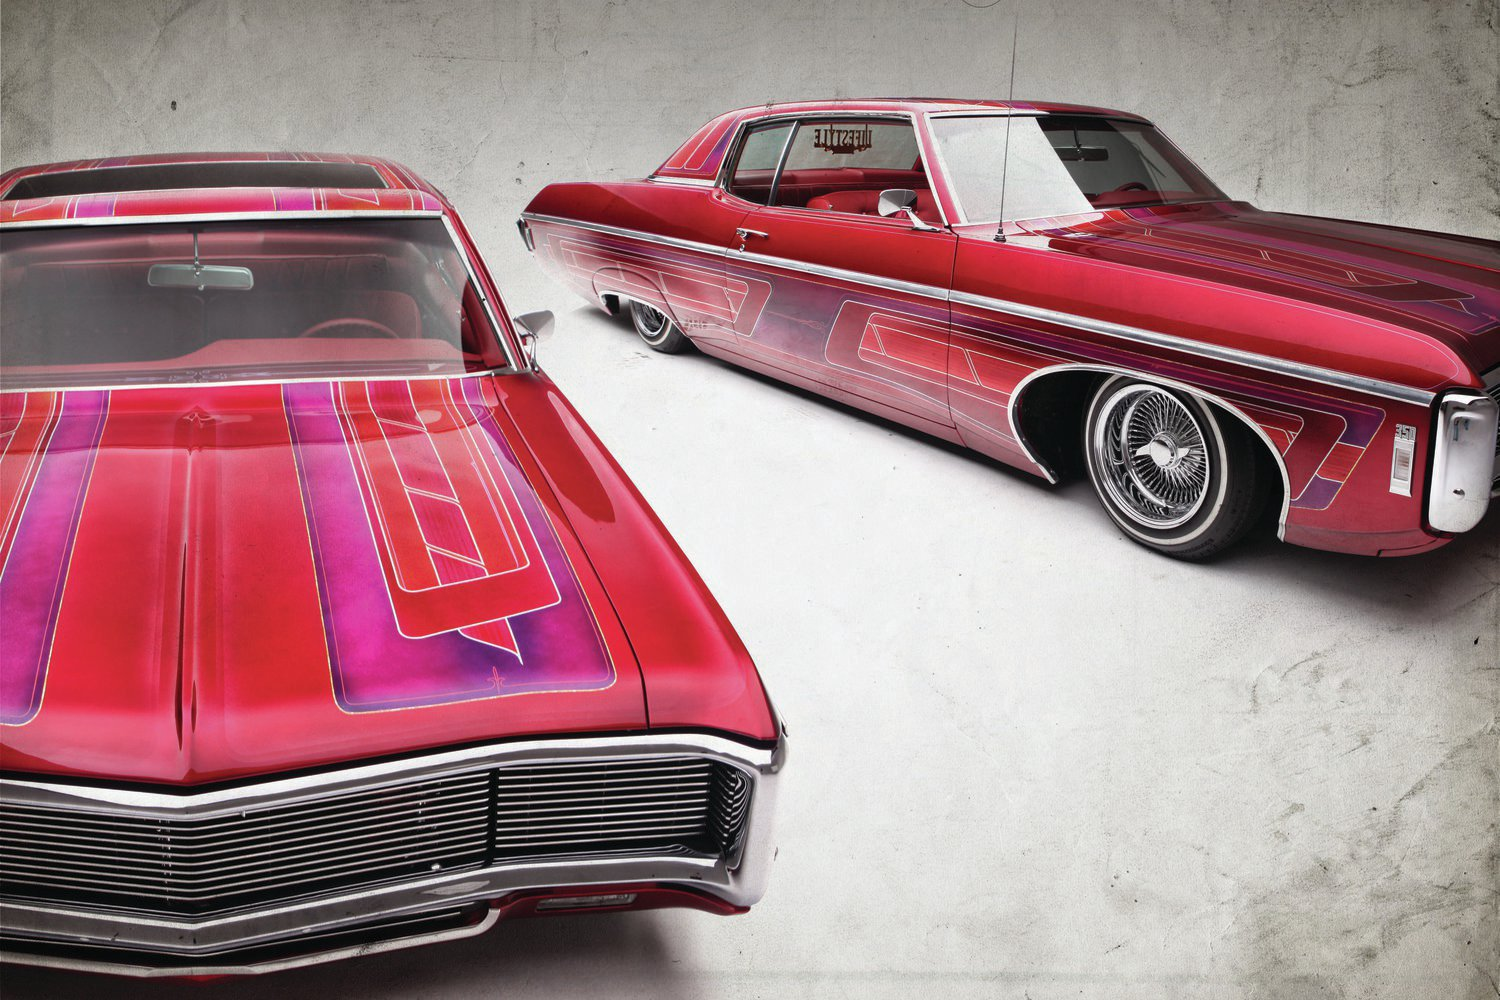 1969 chevrolet caprice and 1968 impala products of the. Black Bedroom Furniture Sets. Home Design Ideas